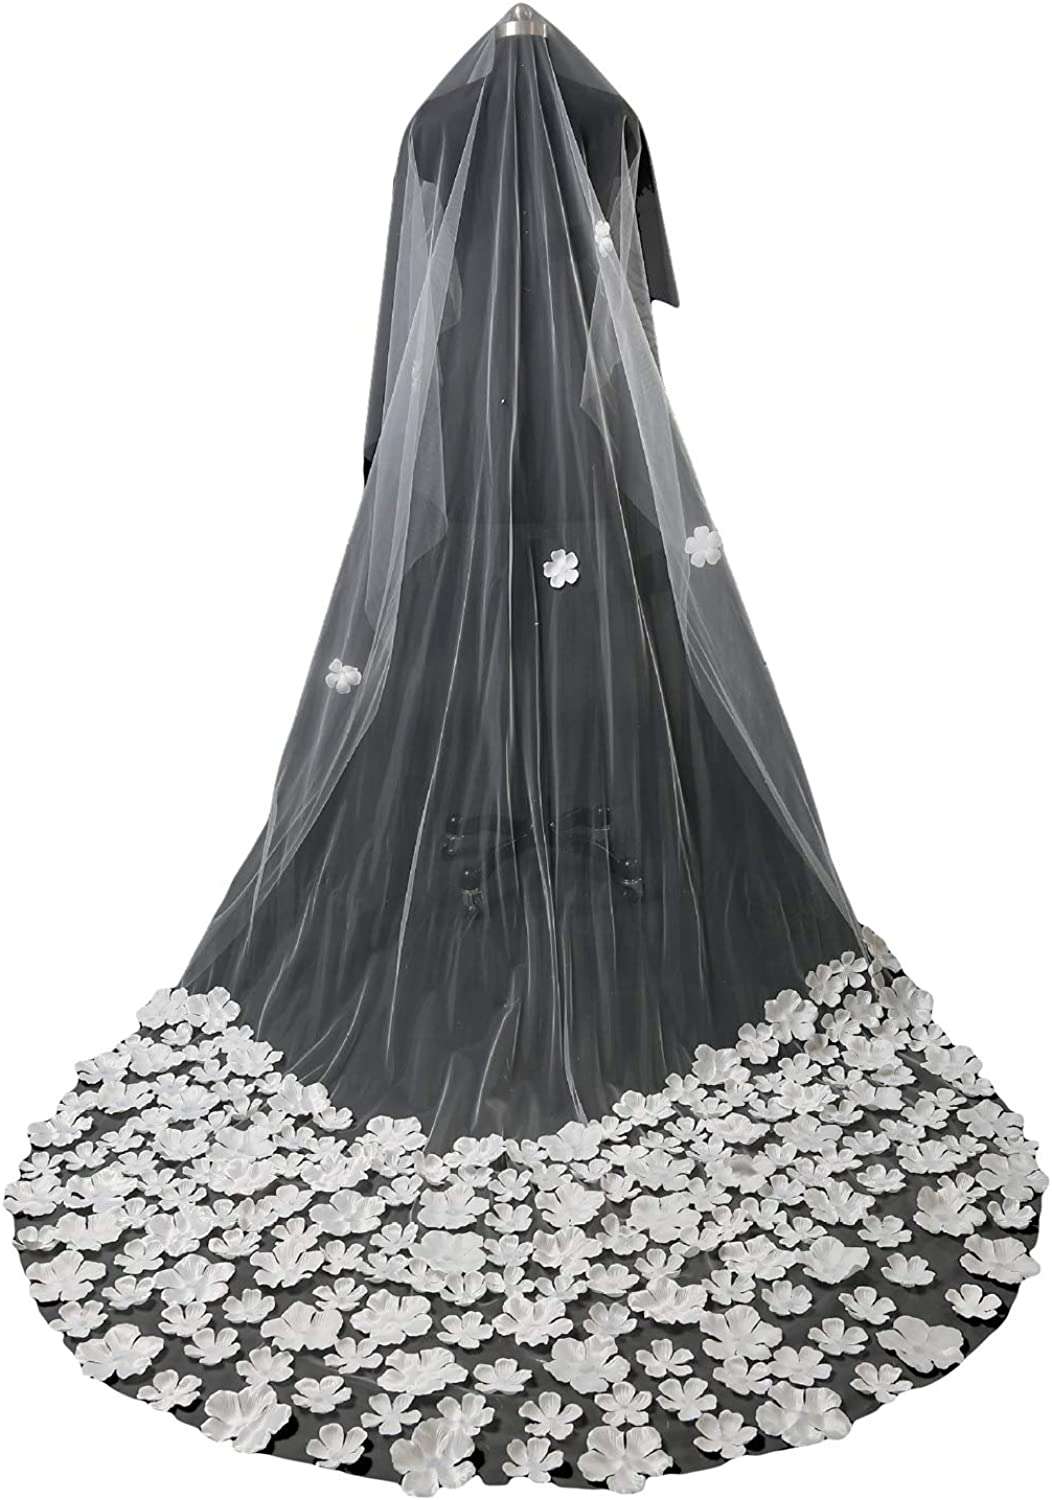 Fenghuavip Flowers Cathedral Wedding Veil 3 M 1 Tier Tulle Bridal Veils